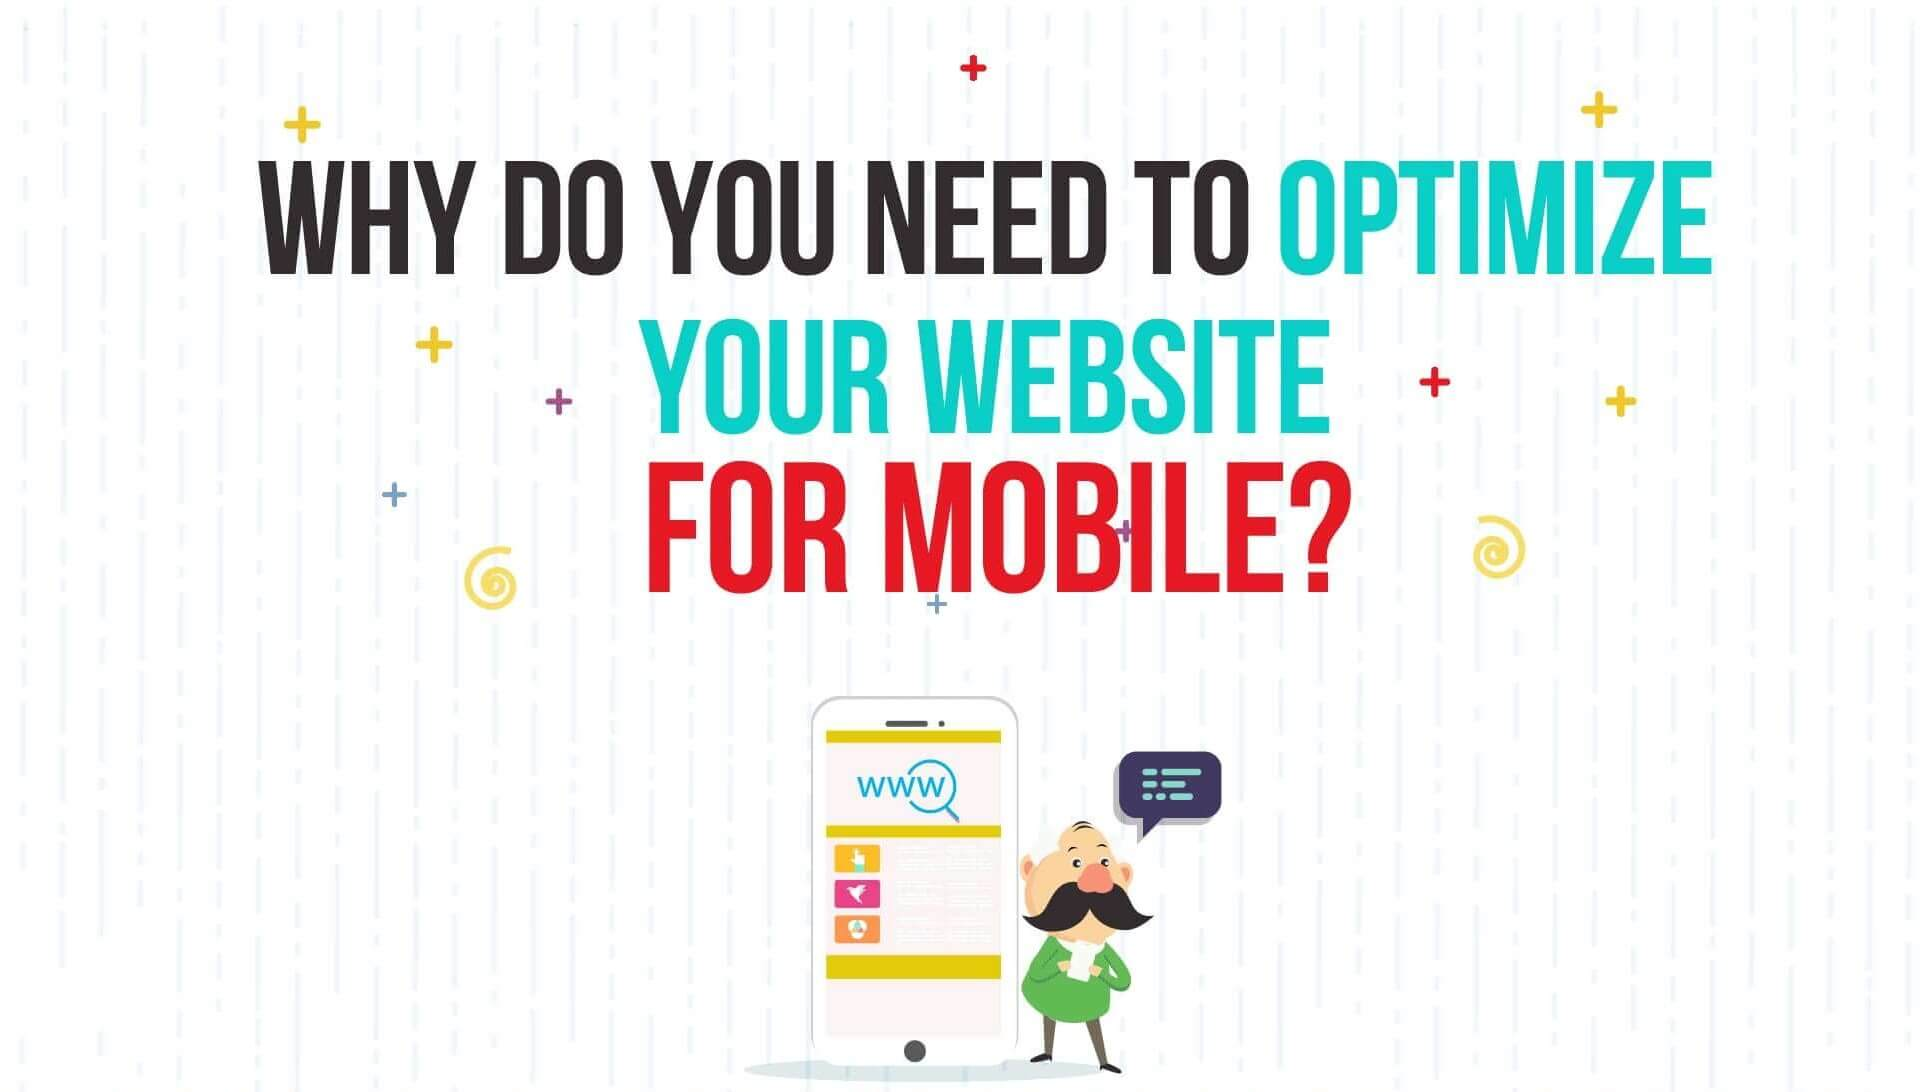 Why do you need to optimize your website for mobile?